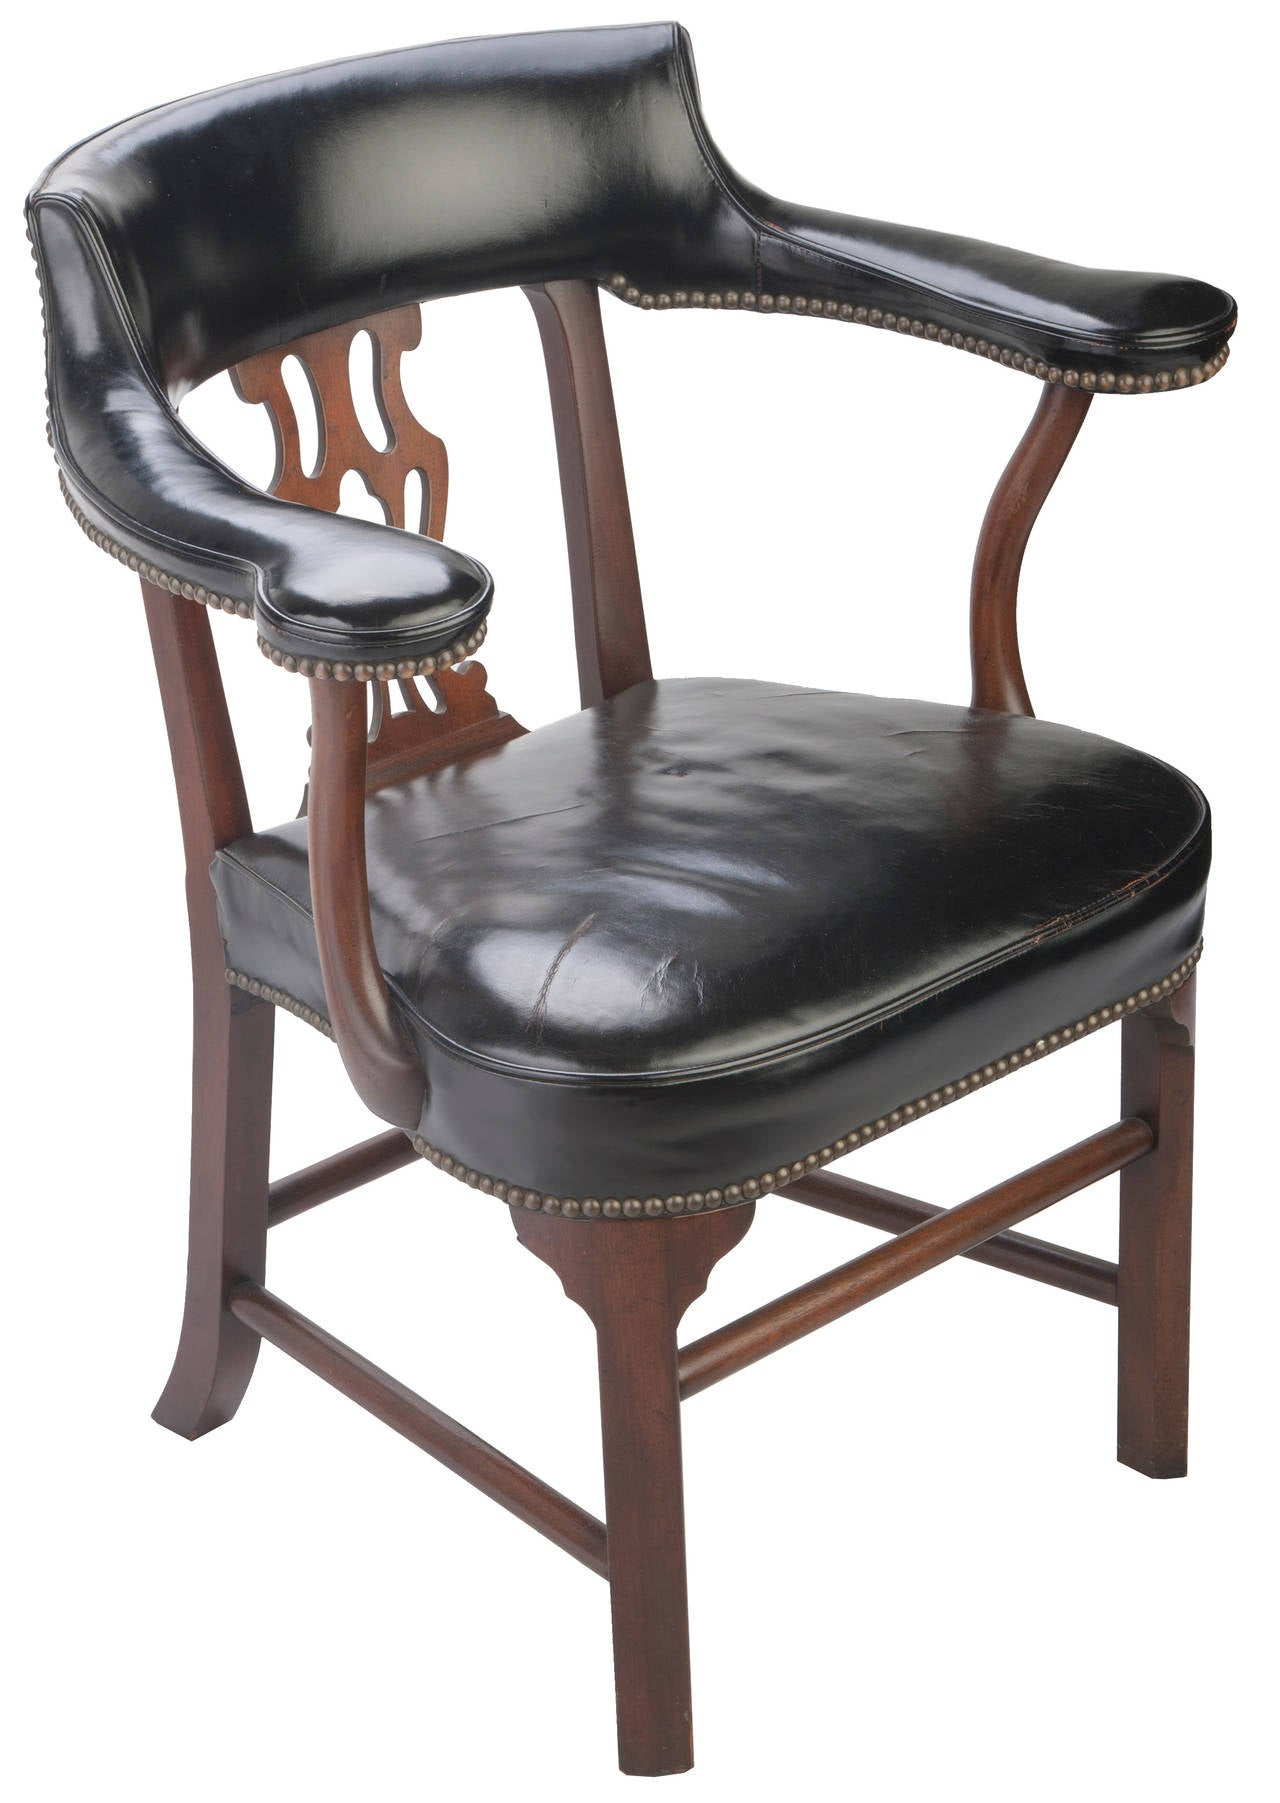 Bankers chair leather - Kittinger Leather Bankers Chairs 2